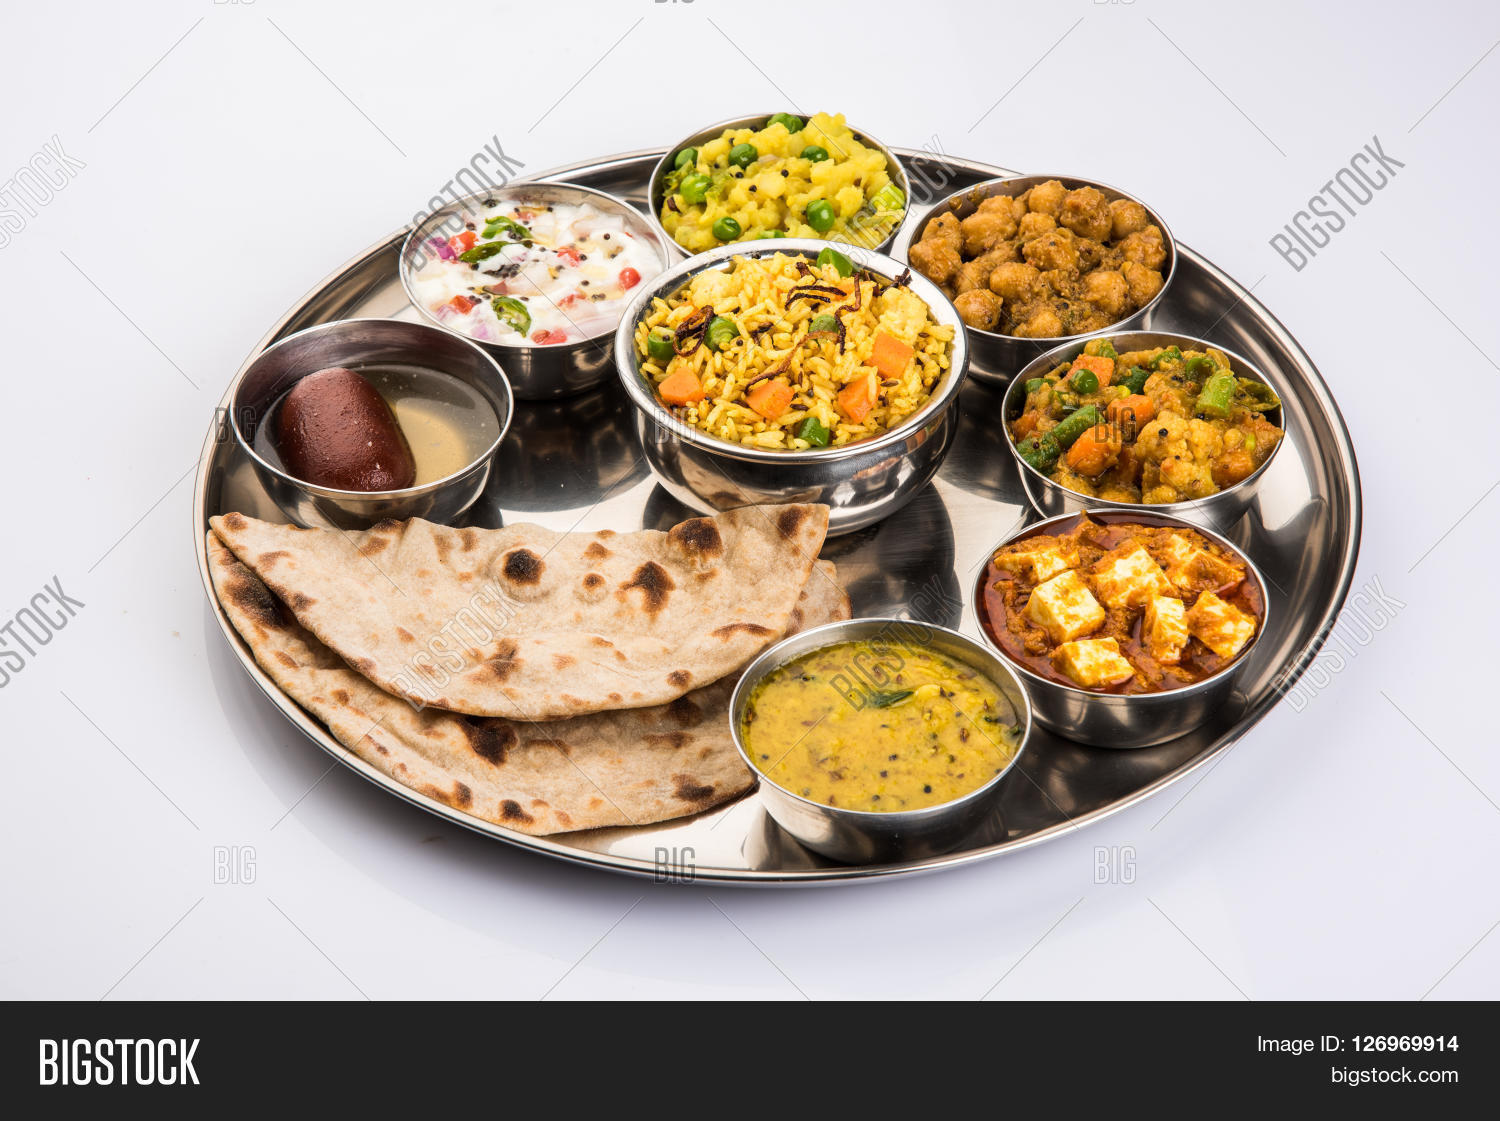 how to make south indian thali